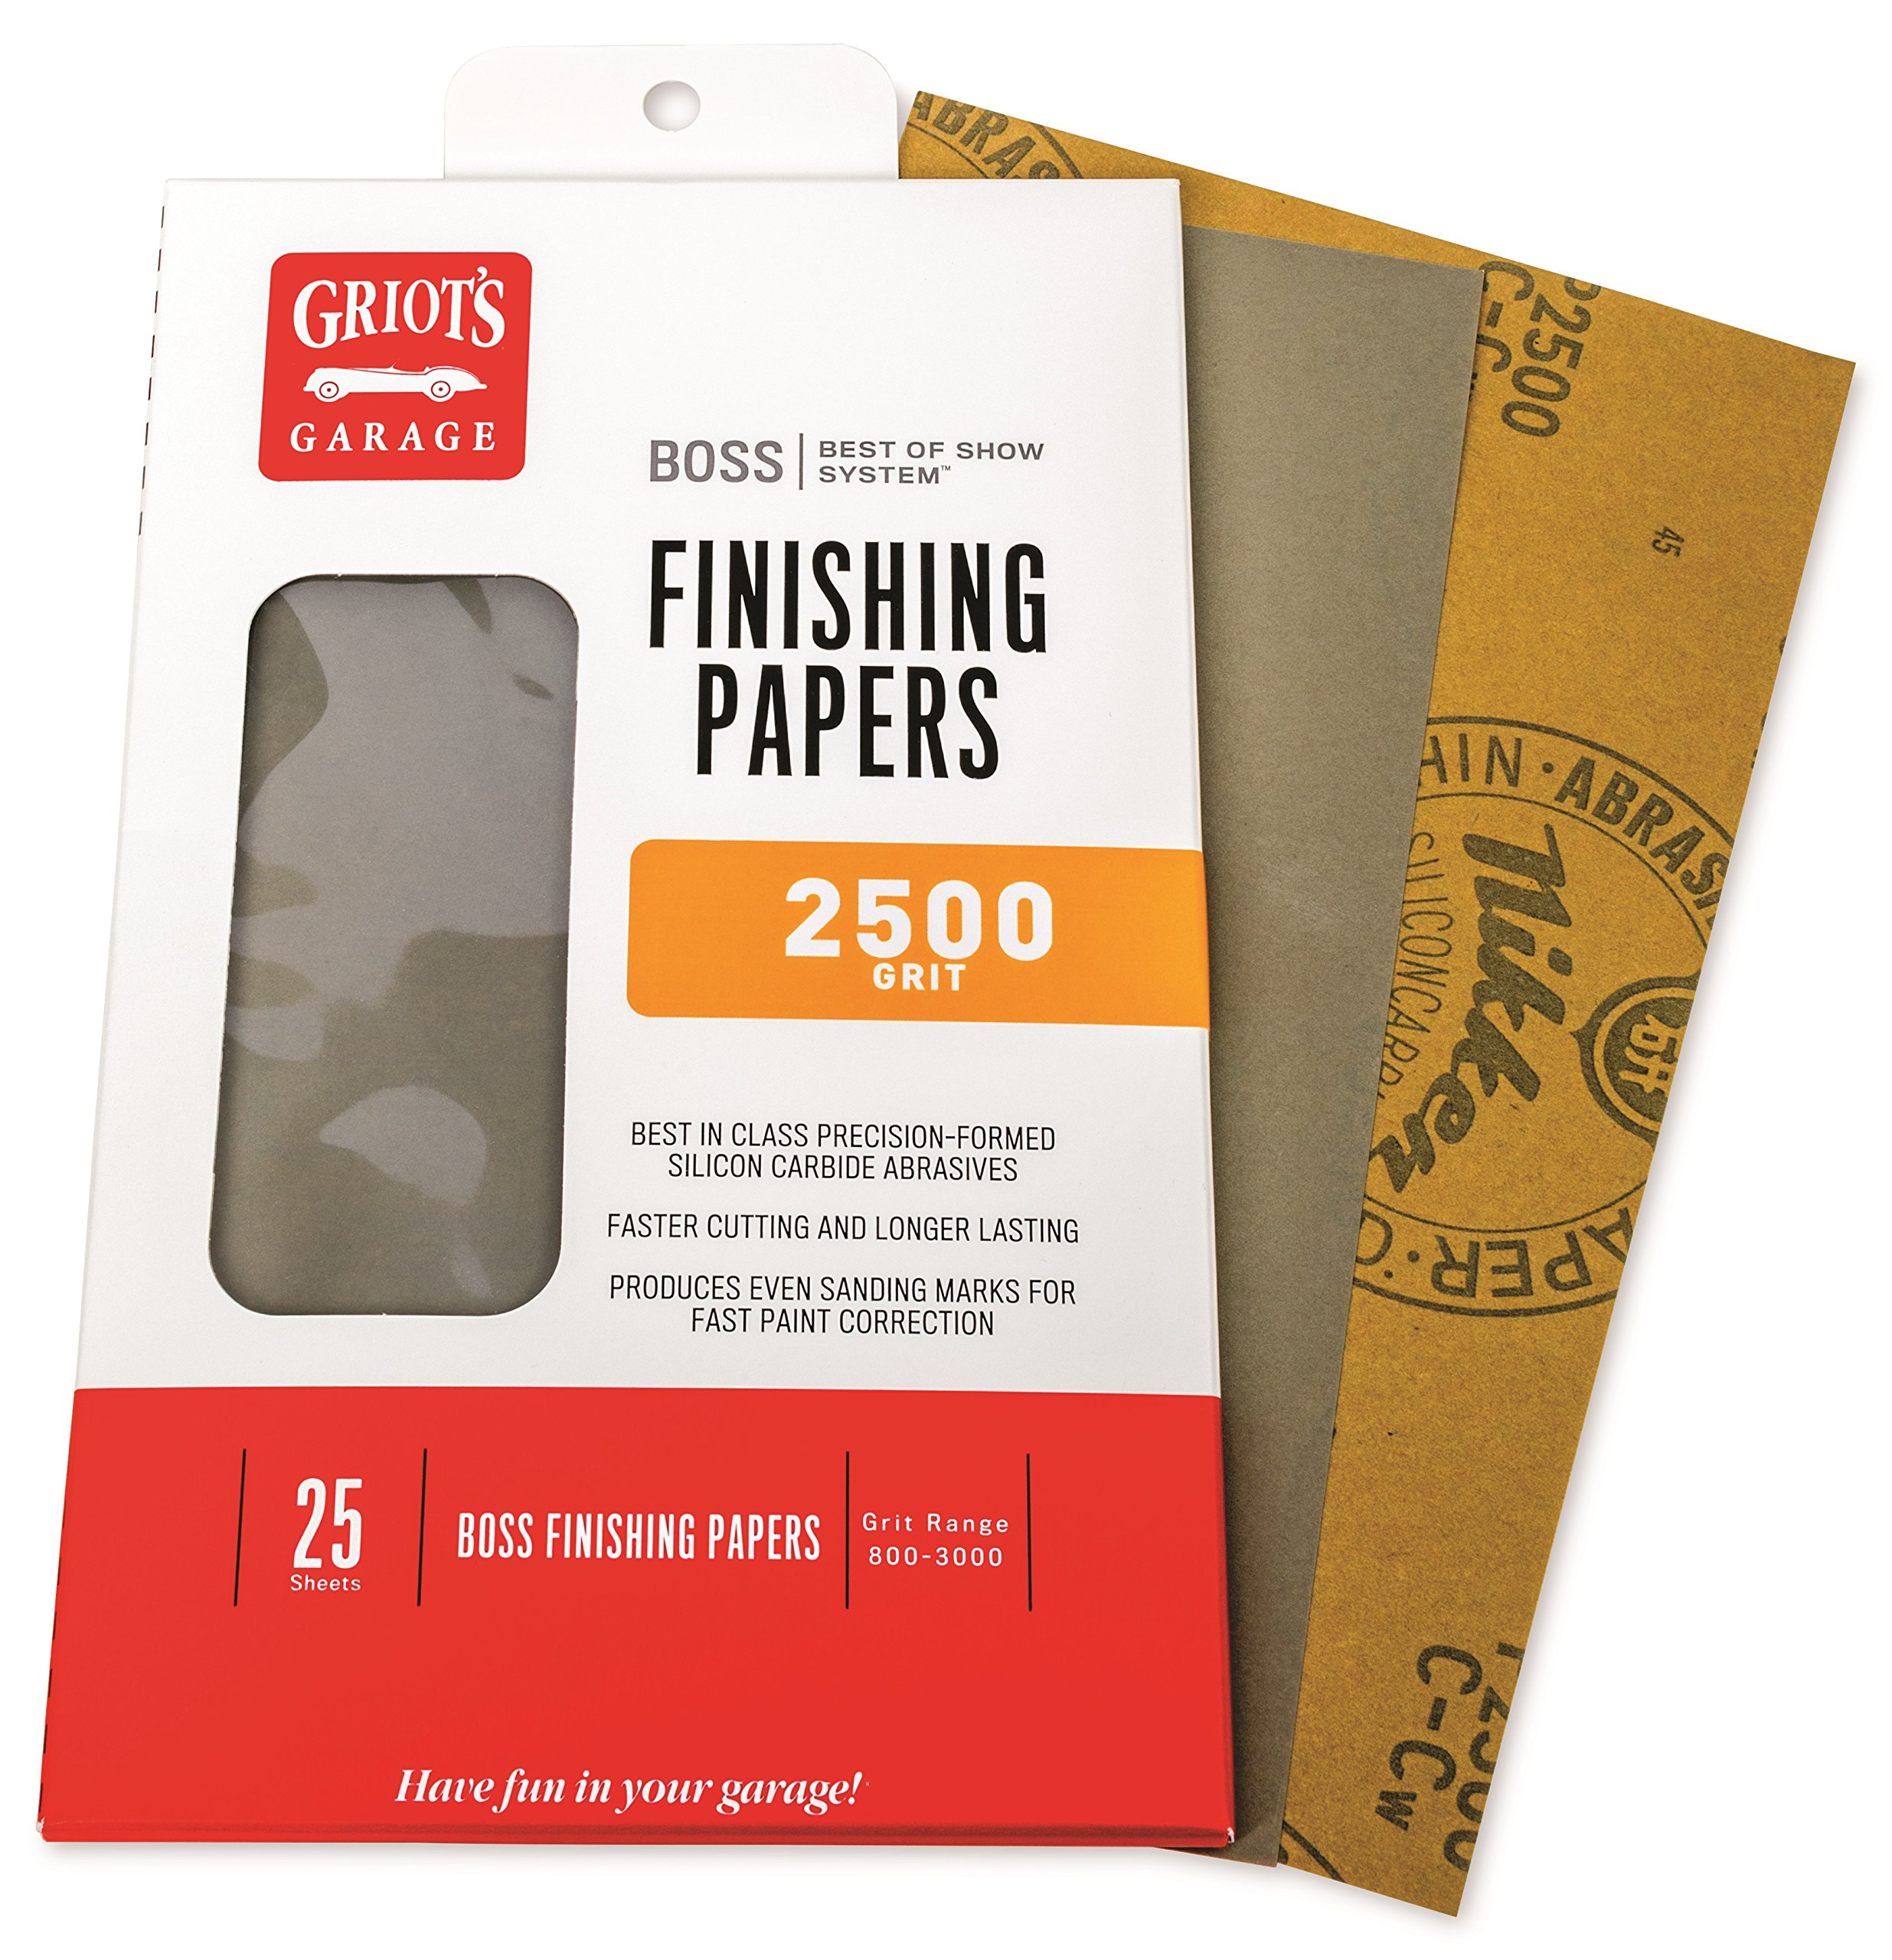 Griot's Garage B2525 Boss Finishing Papers 2500g (25 Sheets)